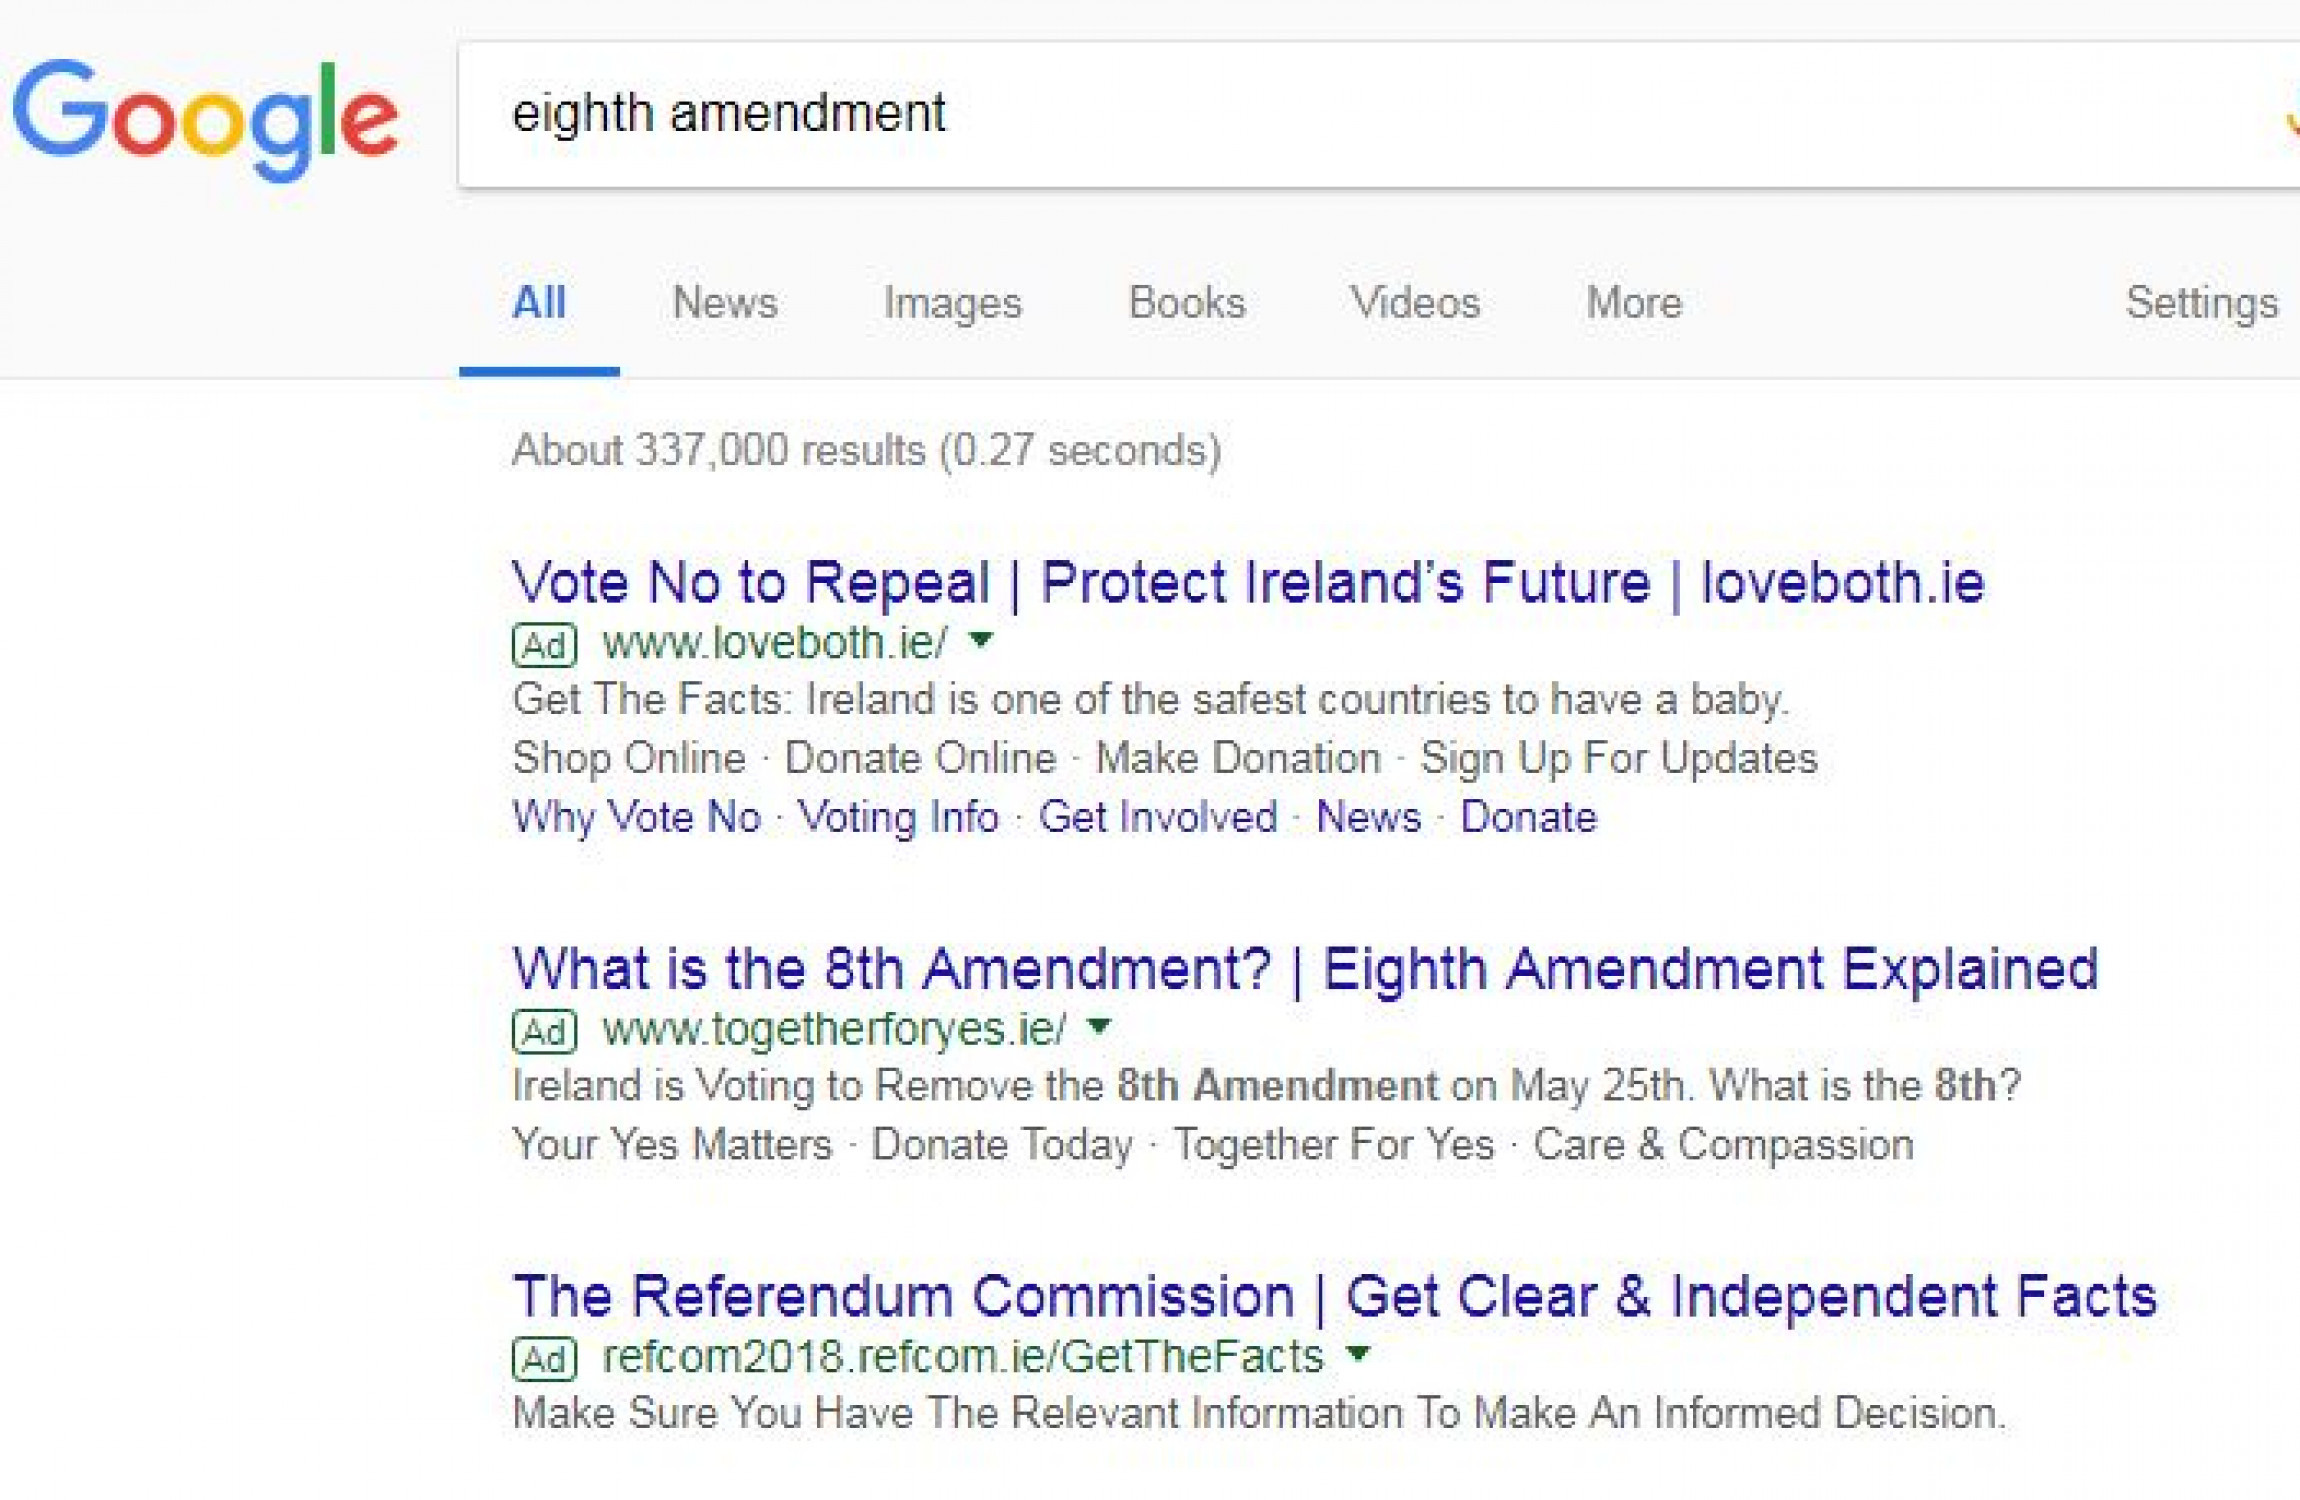 Google suspends all ads on Eighth Amendment referendum